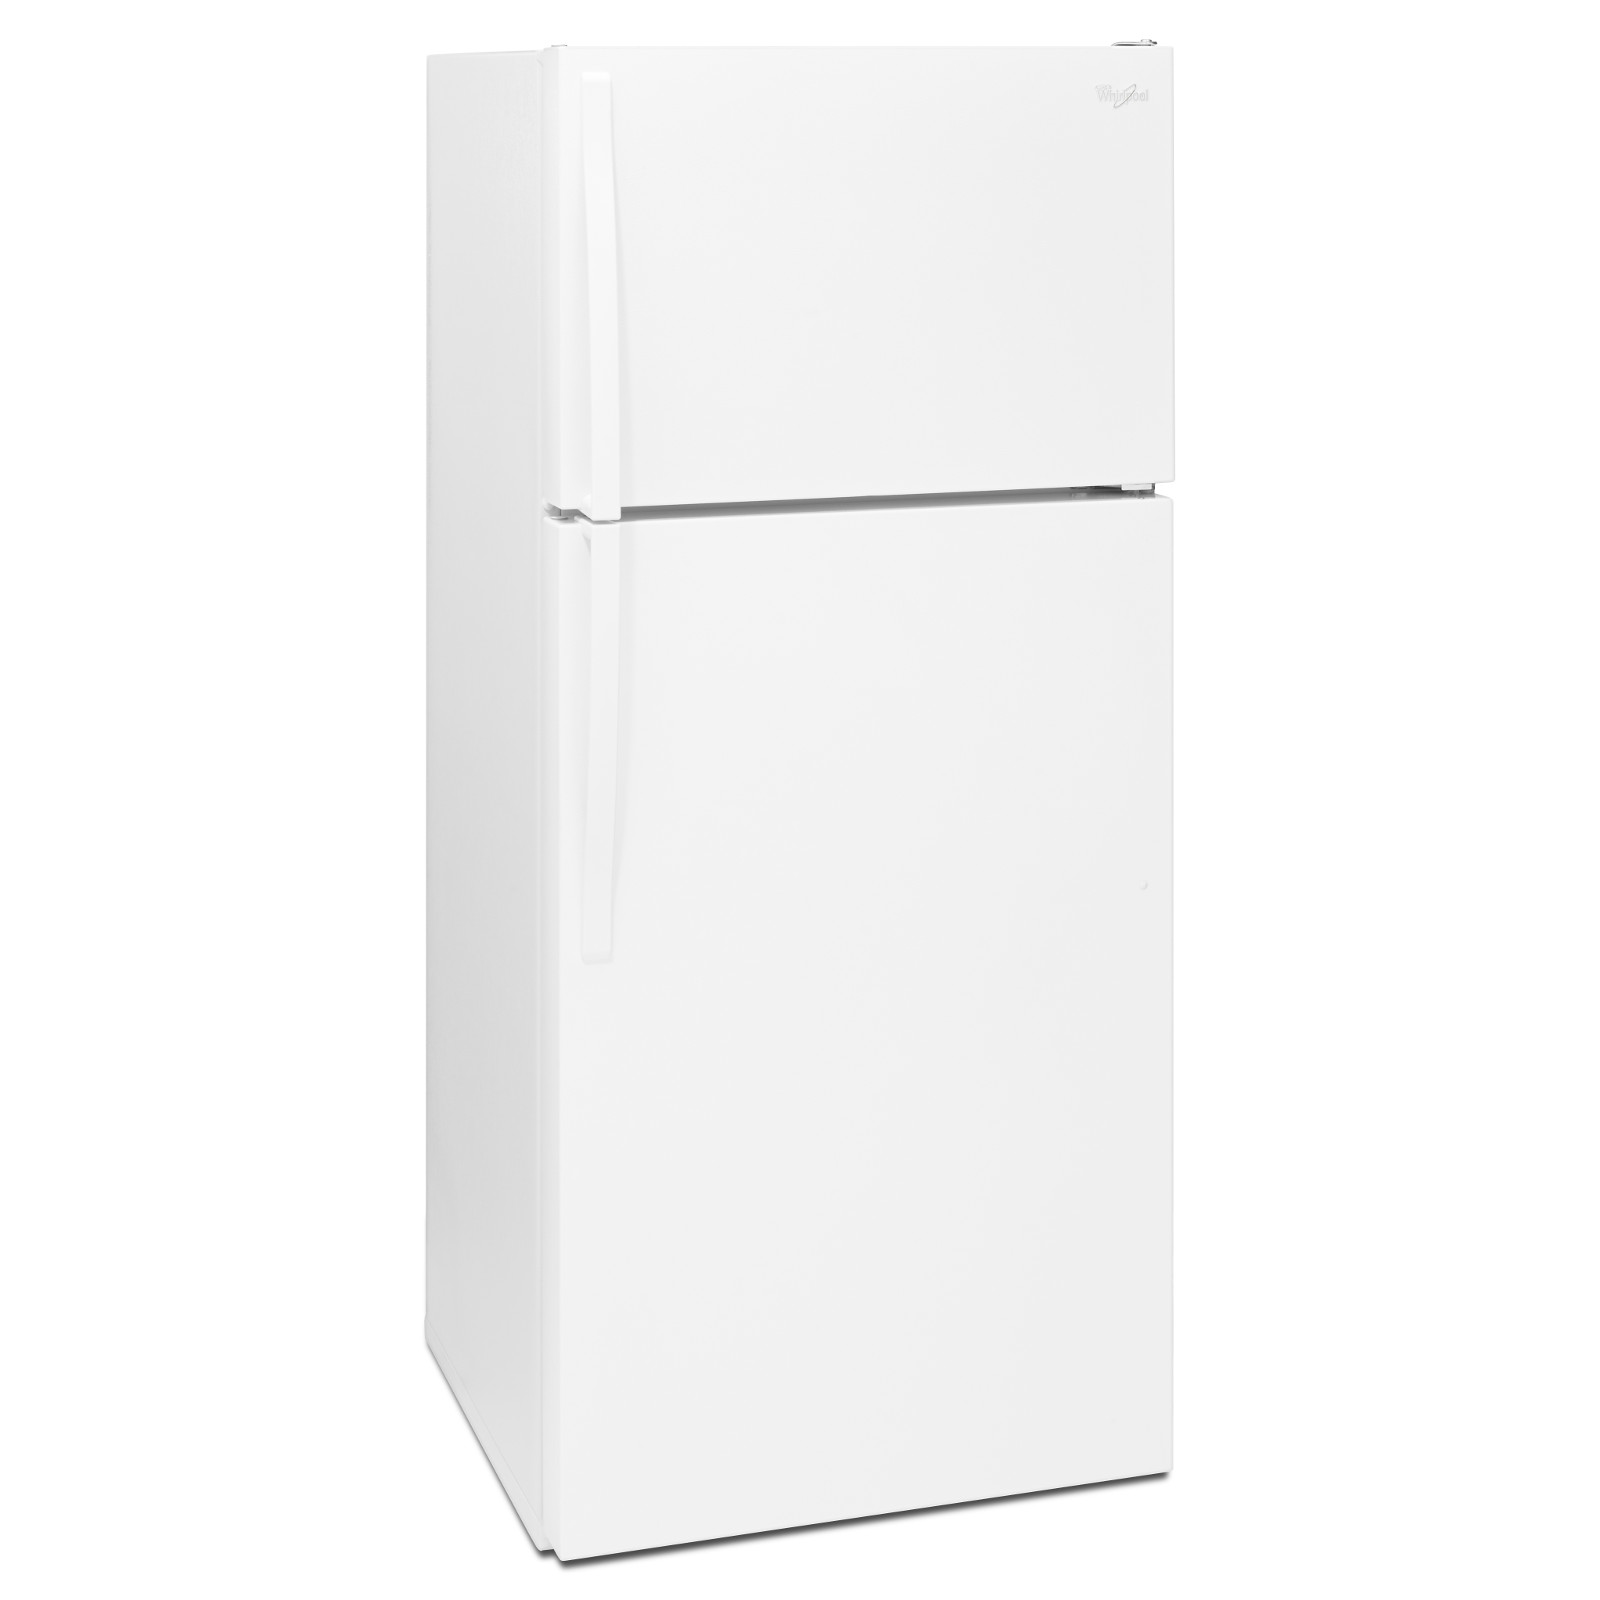 Whirlpool WRT106TFDW 16 cu. ft. Top-Freezer Refrigerator - White